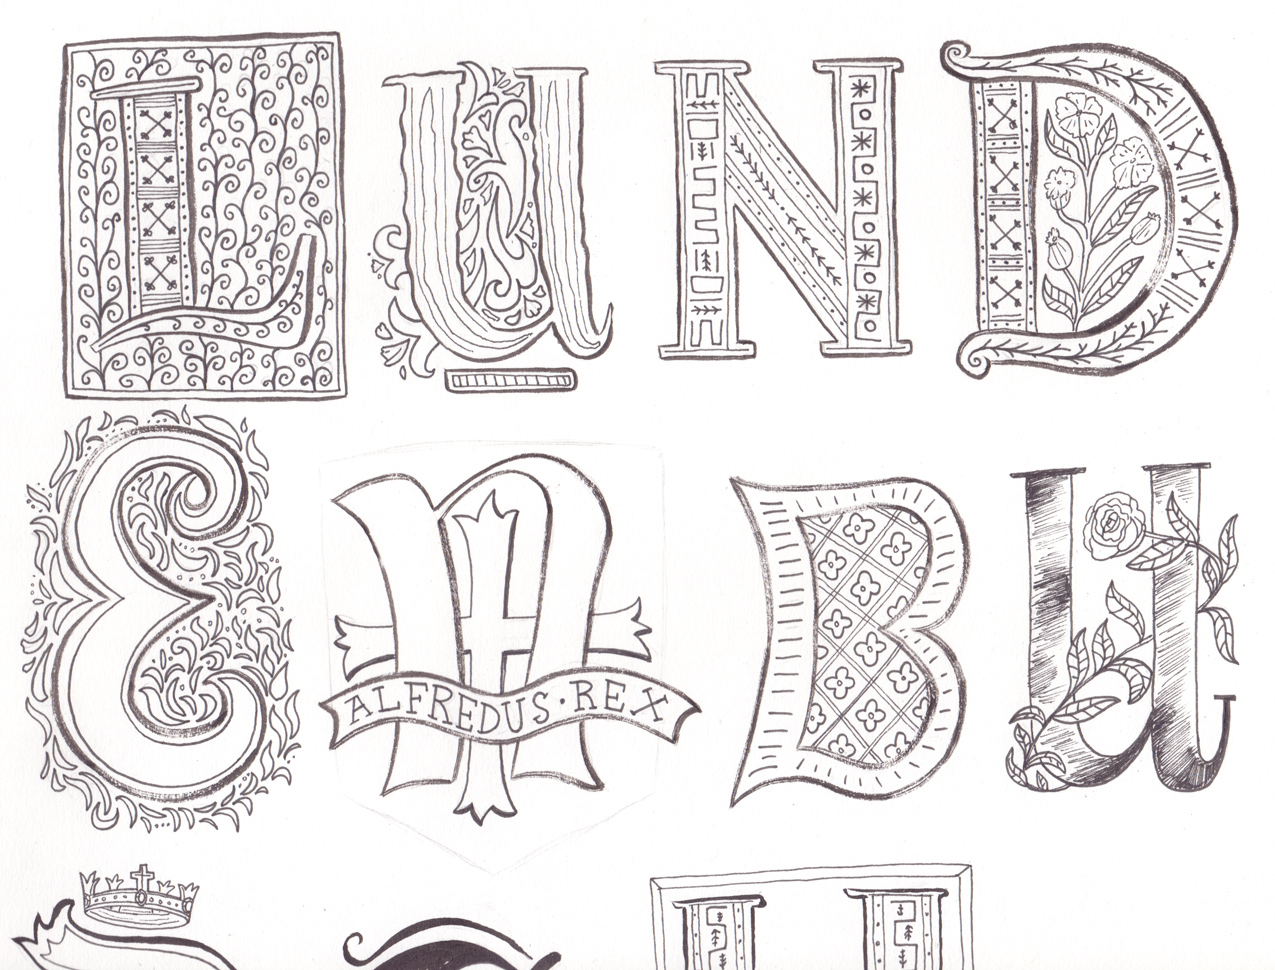 Ye Olde Lettering - One of the most enjoyable aspects of this piece was creating some eclectic, old english lettering.I wanted to create each letter in a unique style, influenced by lettering from the Saxon Chronicles and other historical texts.